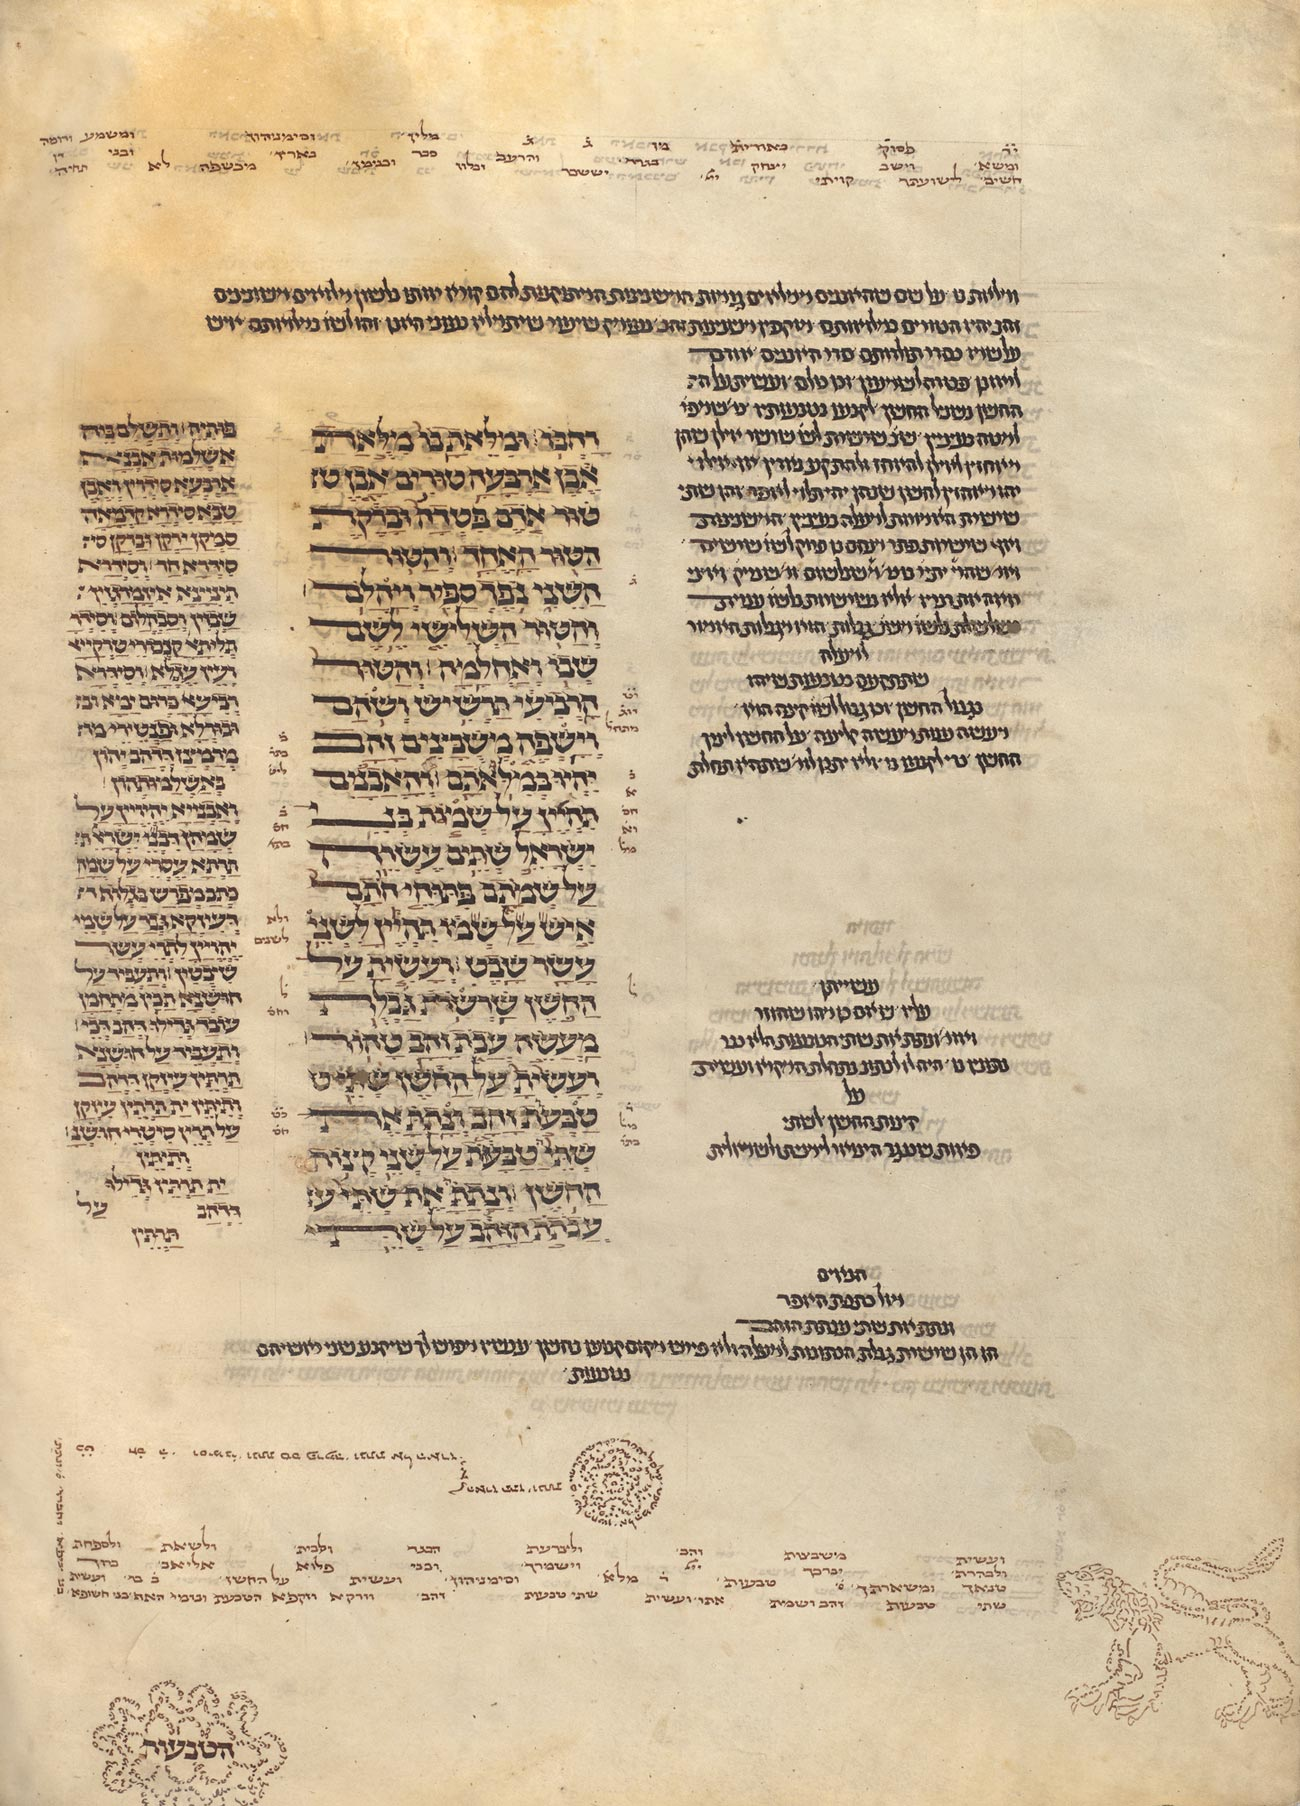 A page of sparse Hebrew text includes shapes and a lion formed from letters.